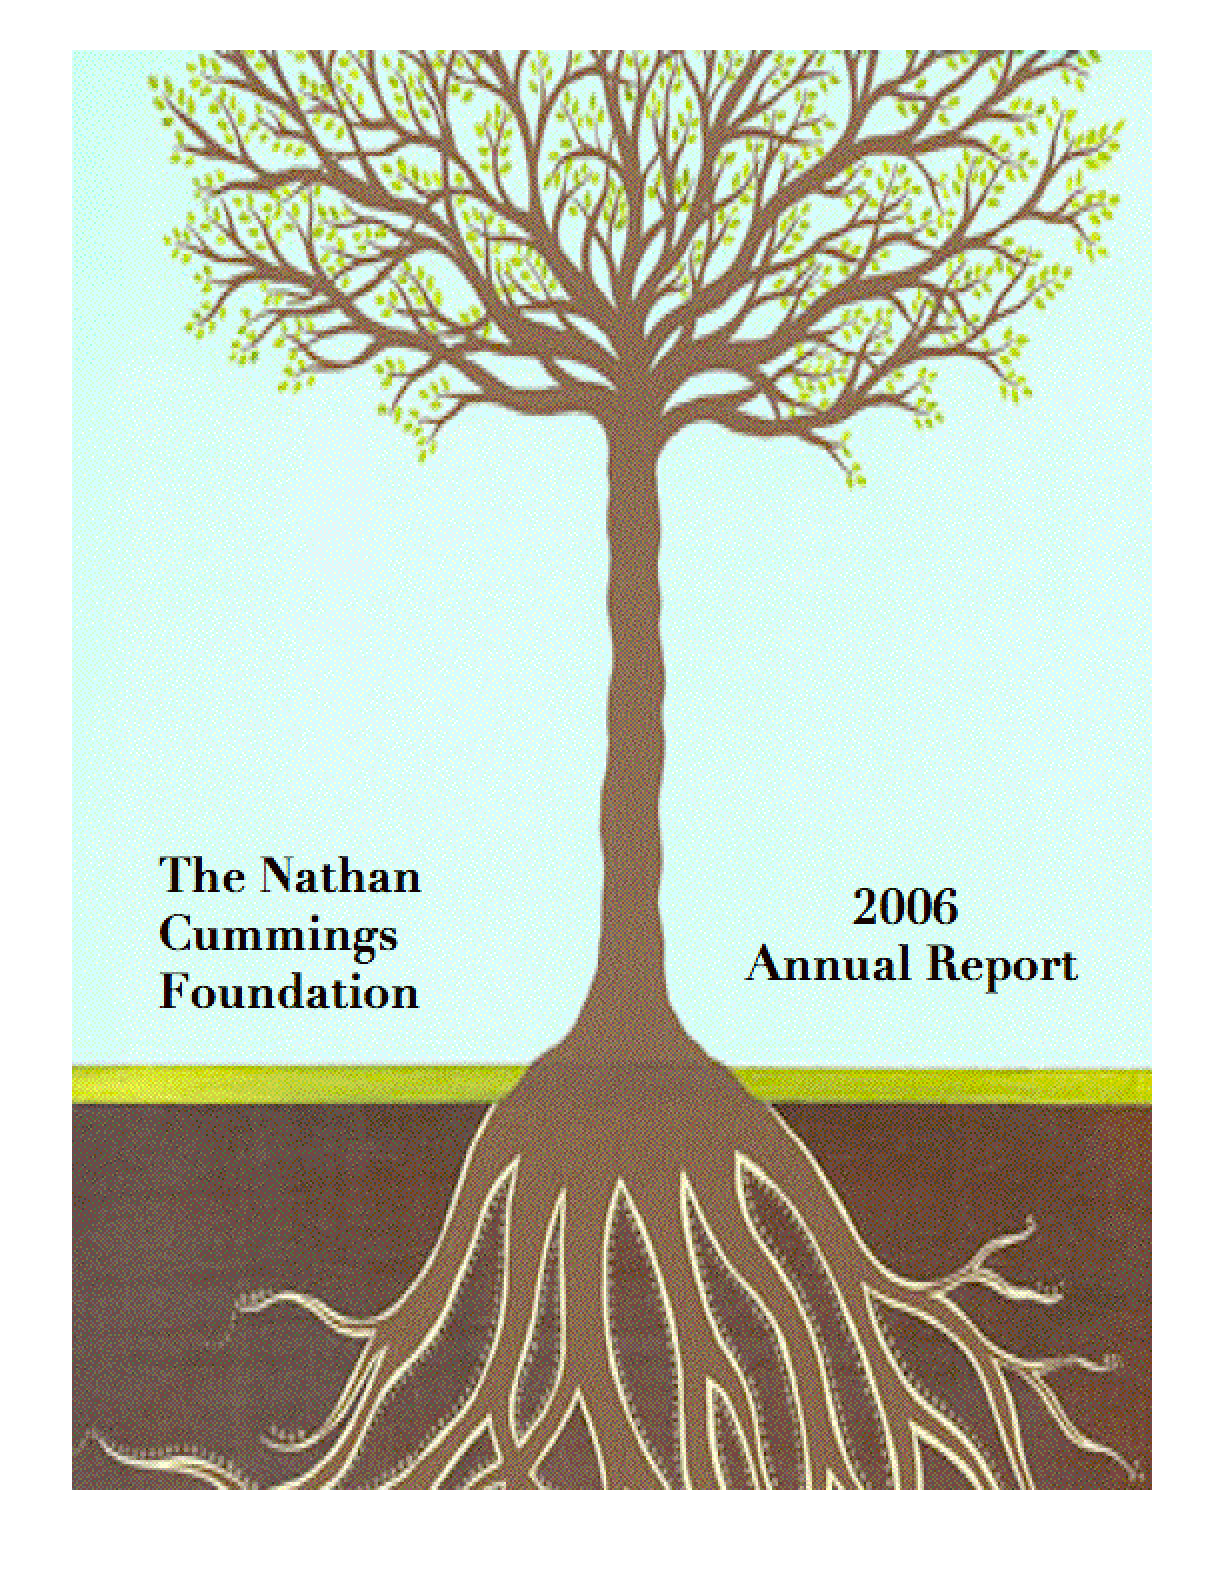 Nathan Cummings Foundation - 2006 Annual Report